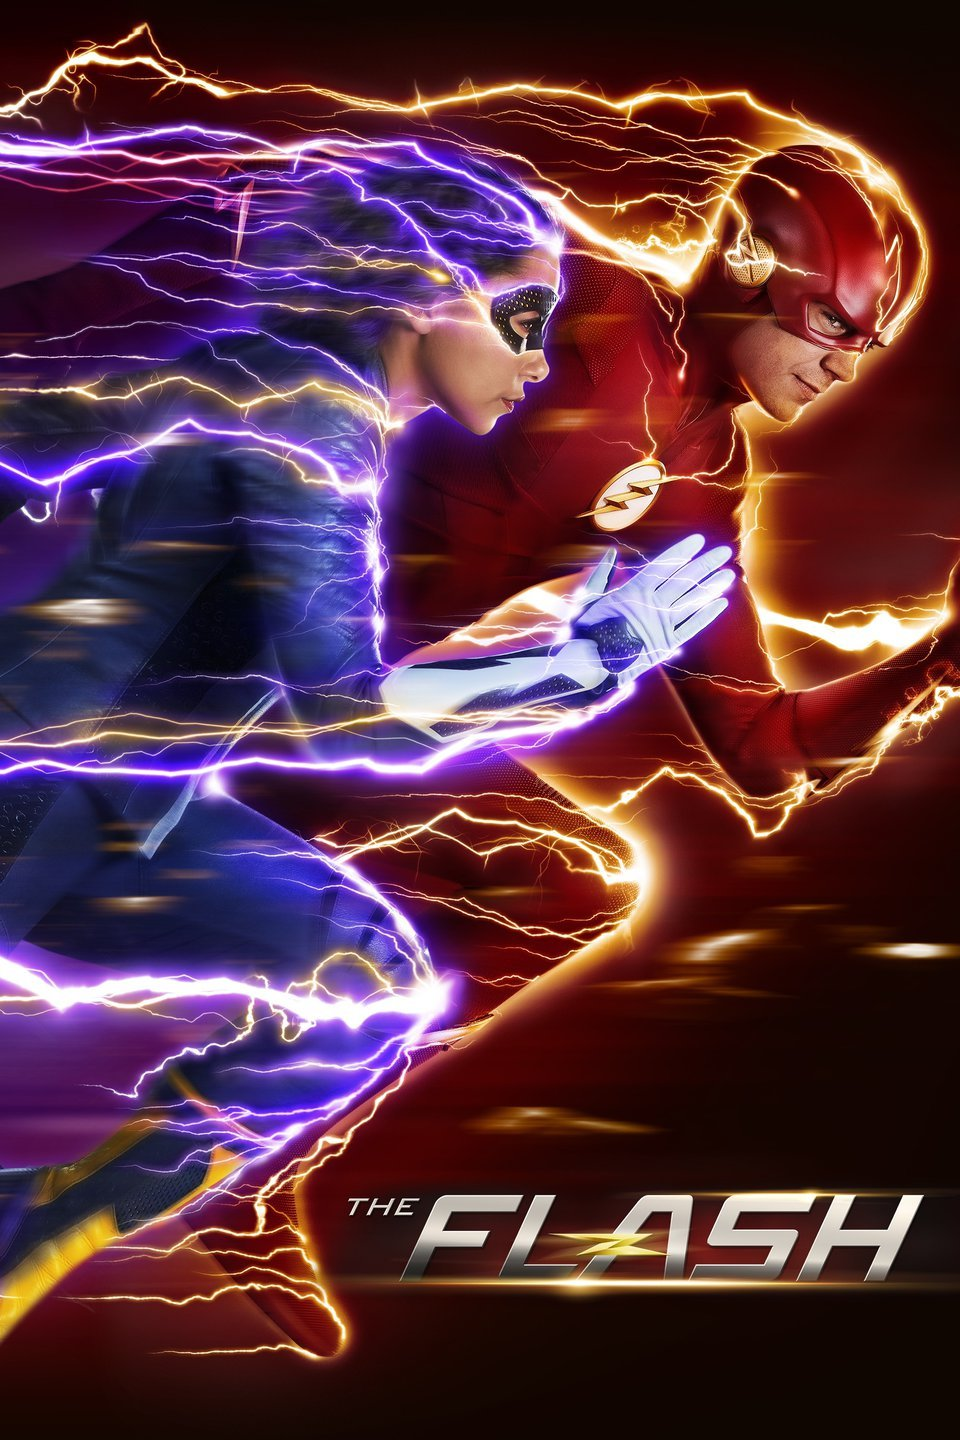 The Flash 7starhd